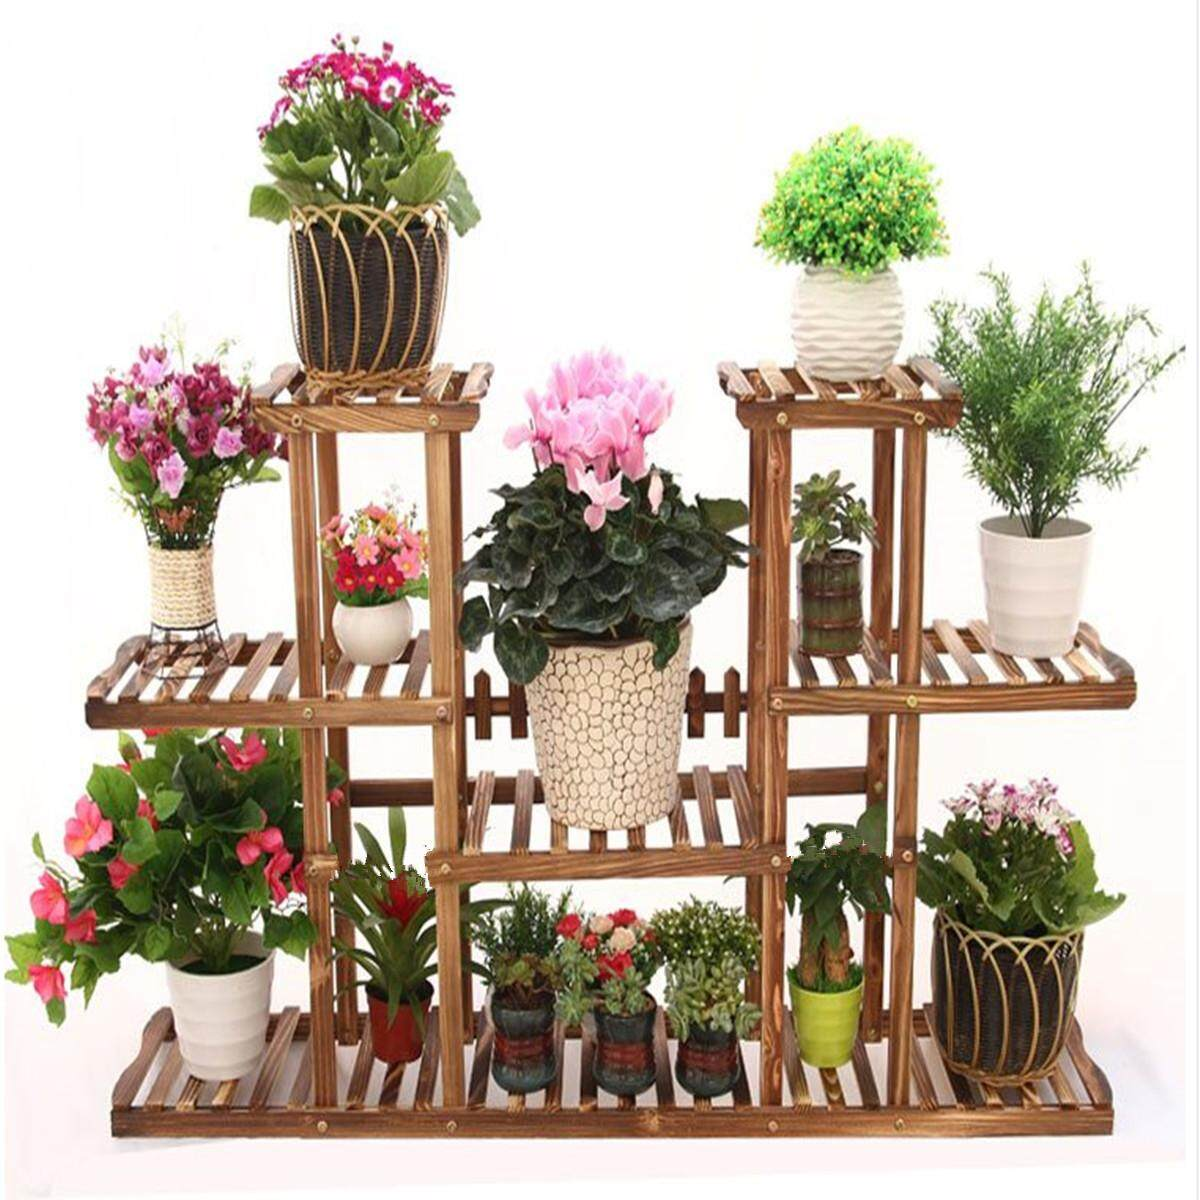 4 Tier Pot Wooden Bamboo Flower Plant Display Stand Wood Shelf Rack Home Outdoor